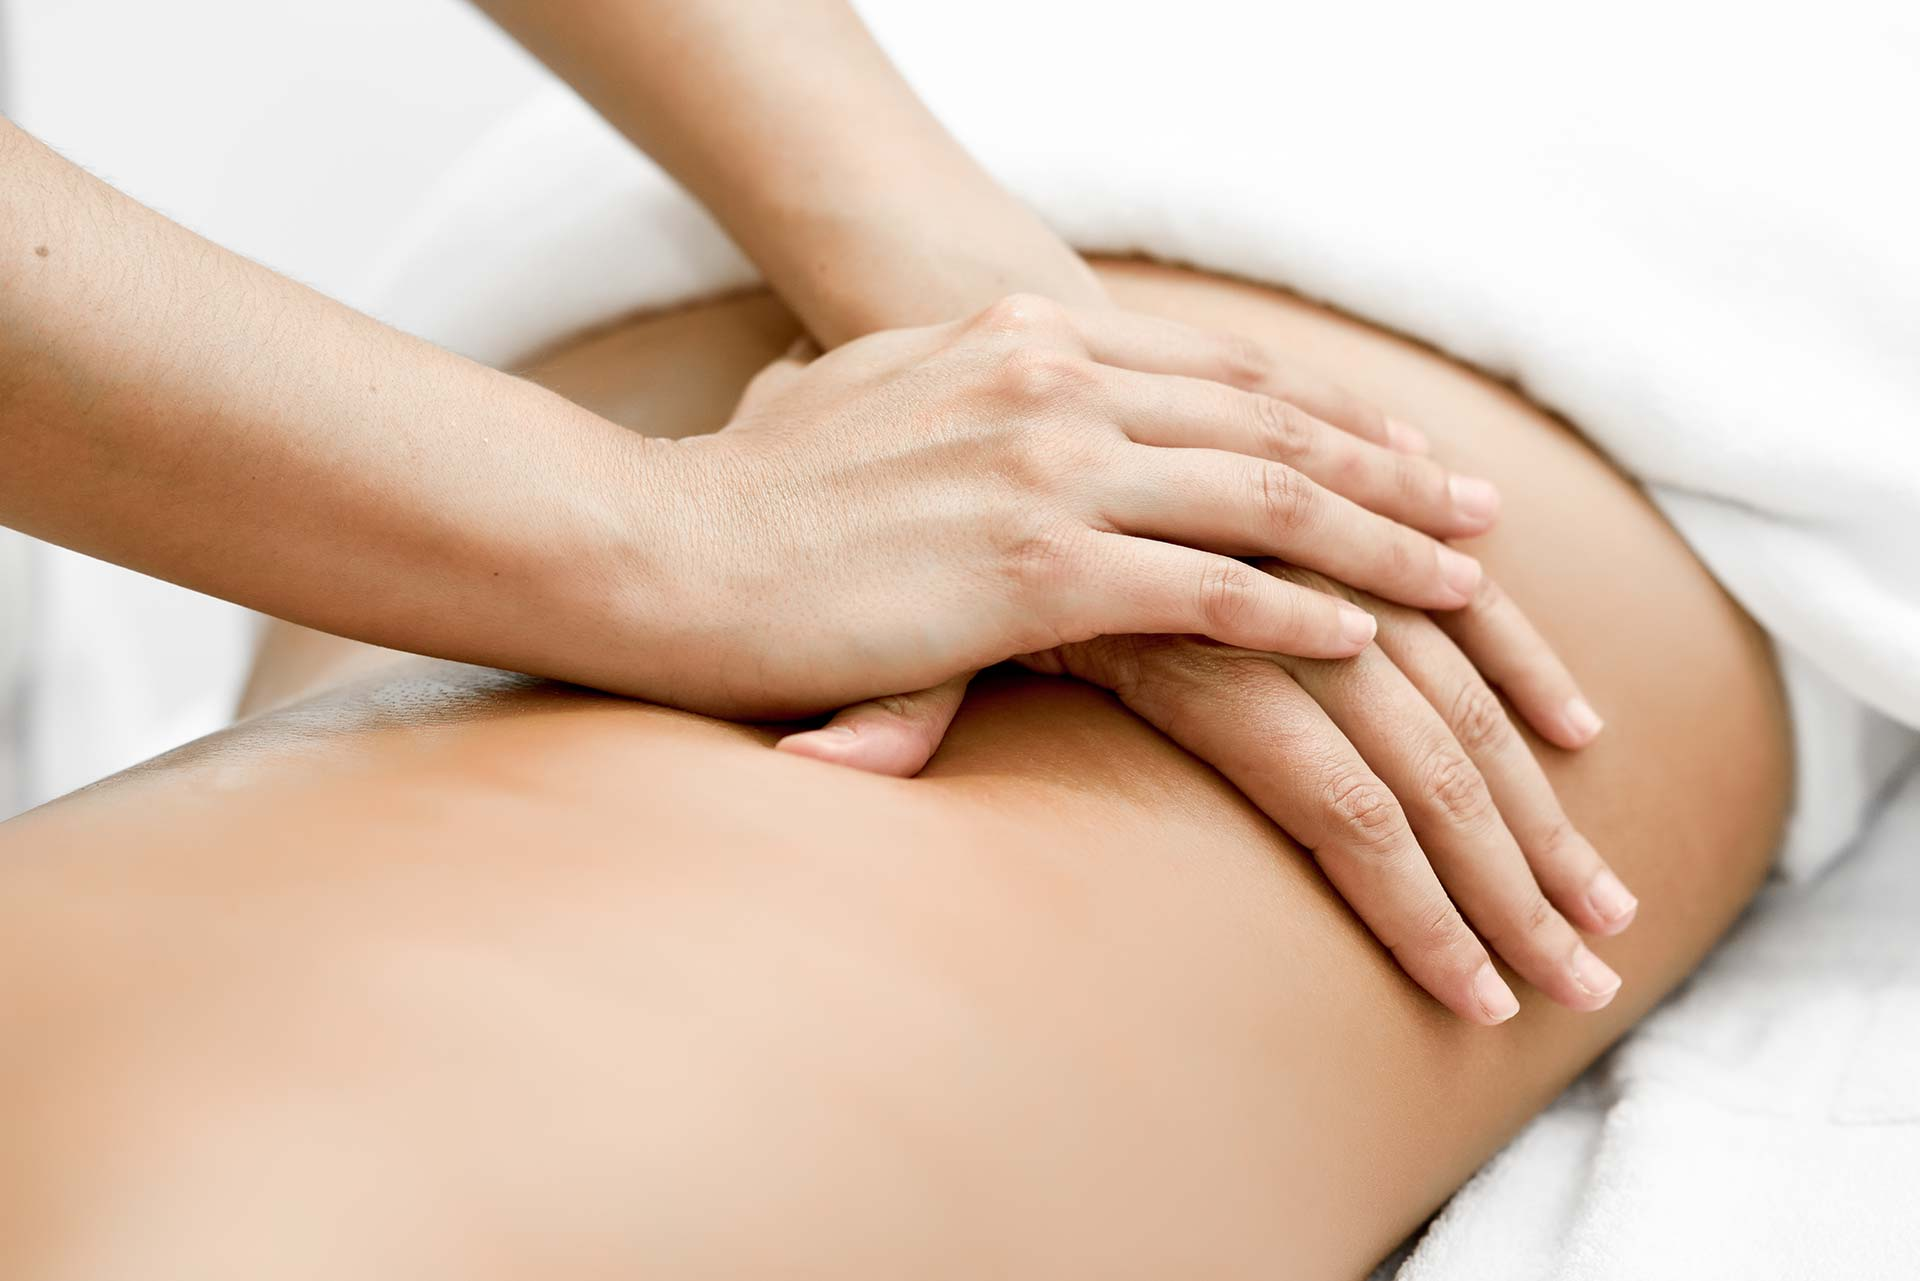 Importance of Attending Massage Therapy School